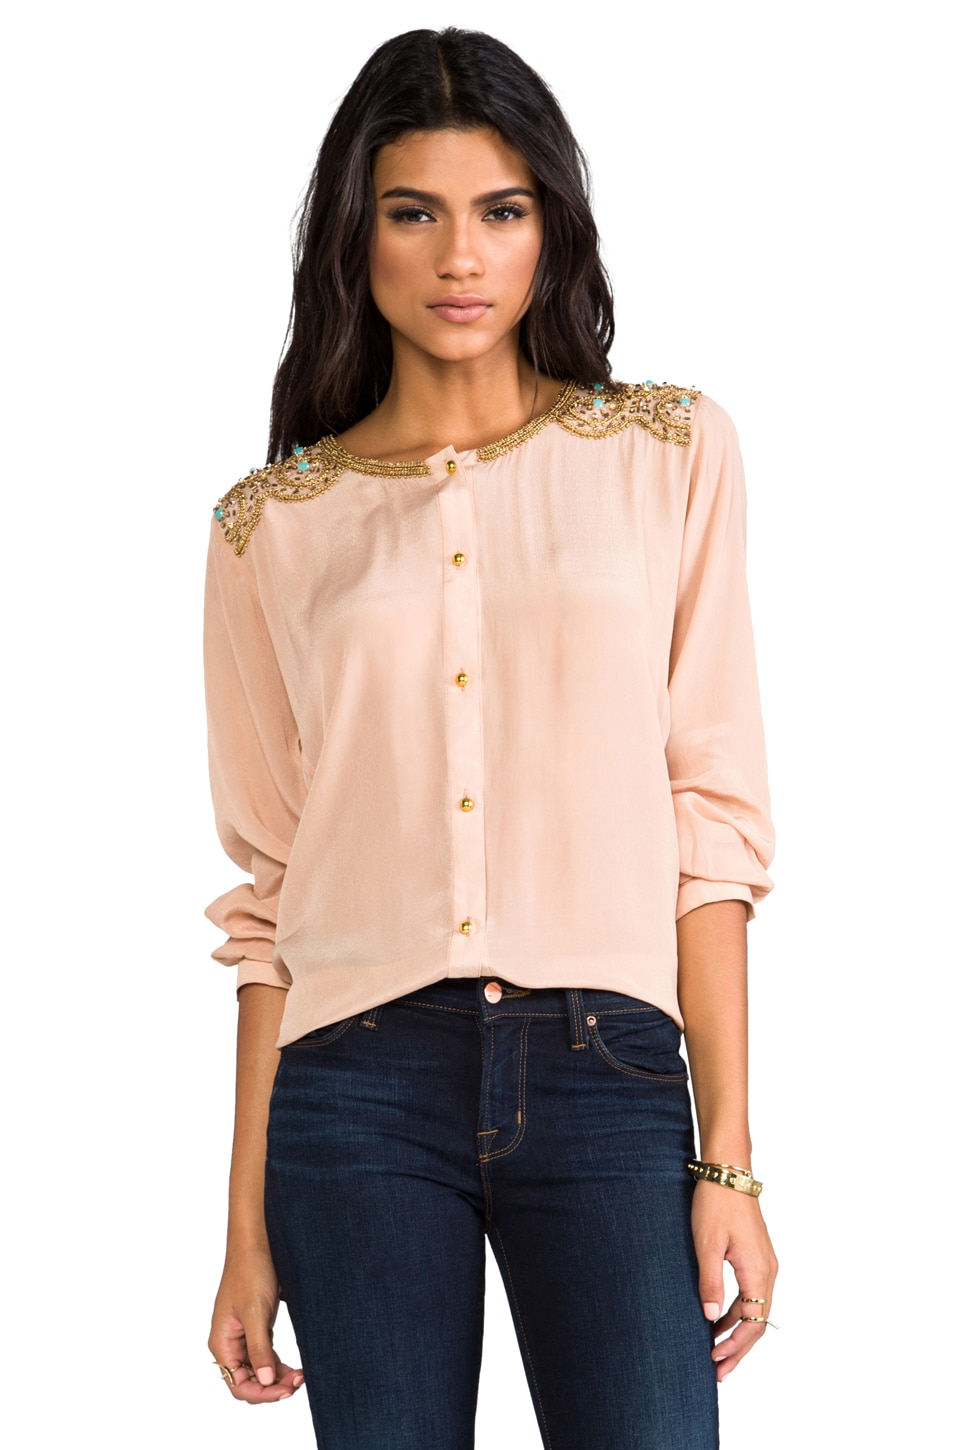 Karina Grimaldi Beaded Juno Top in Nude